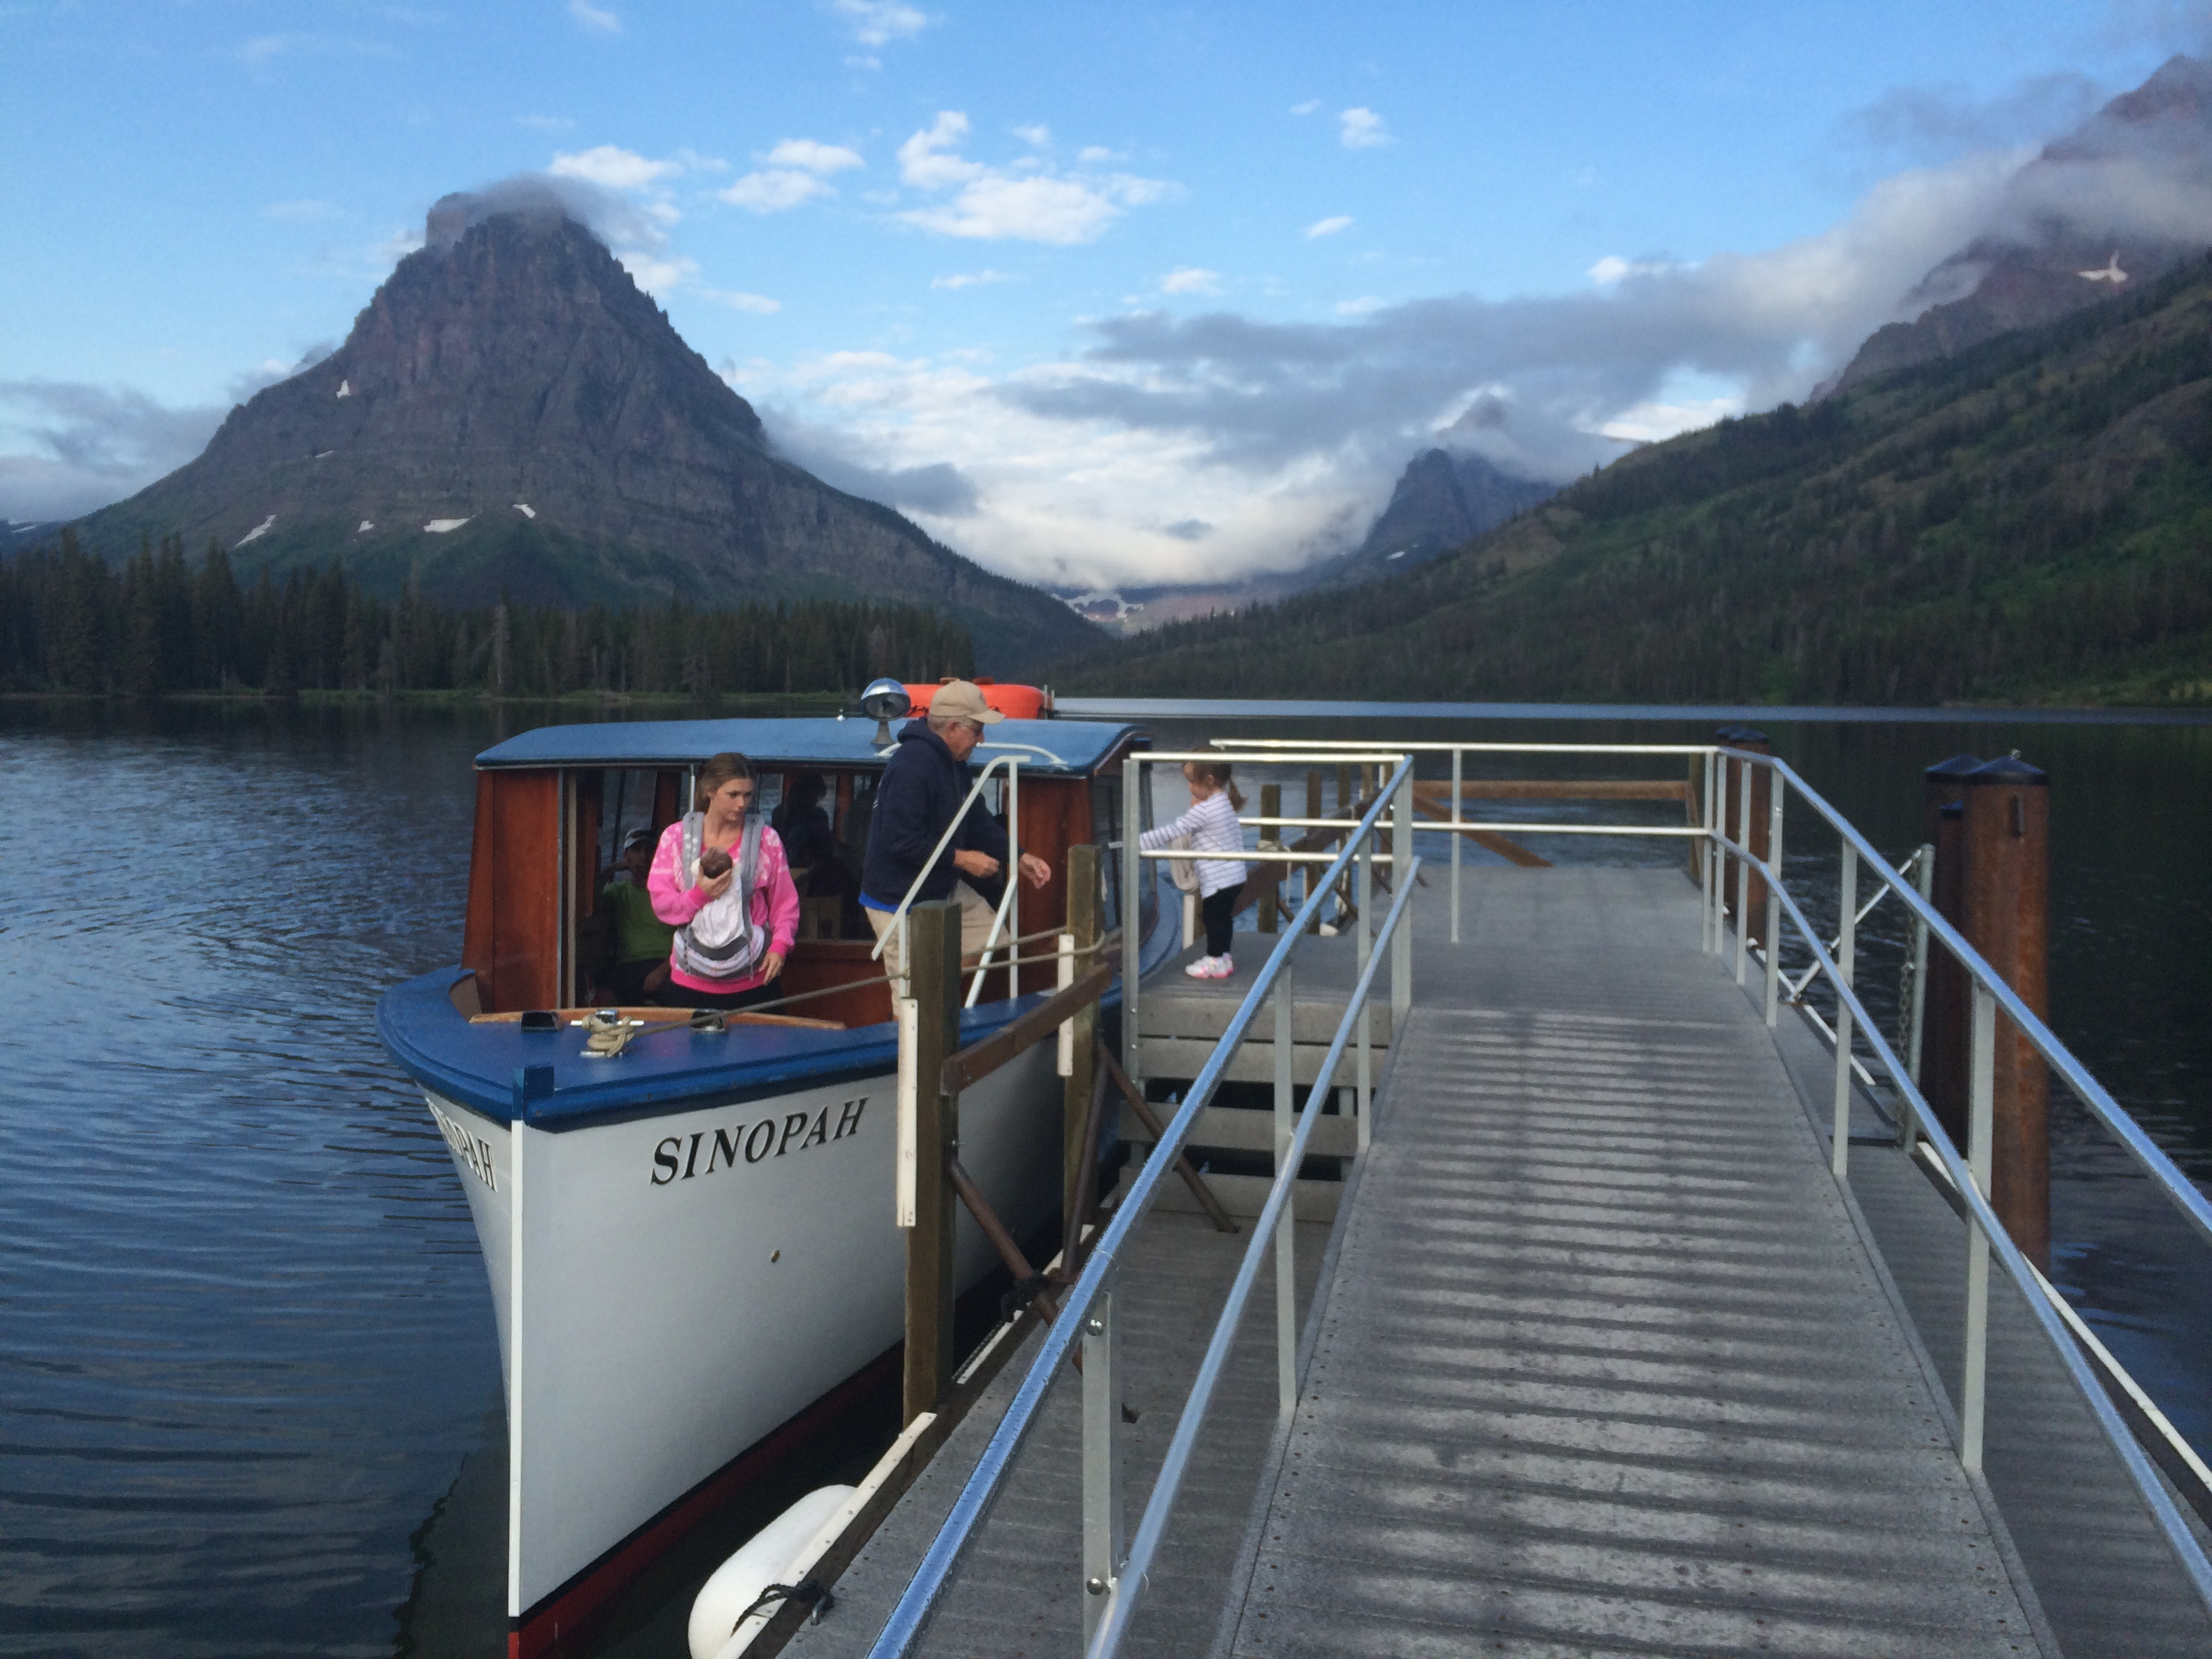 Historic wooden tour boat Sinopah on Two Medicine Lake in Glacier National Park, Montana. Photo taken on August 2, 2014.